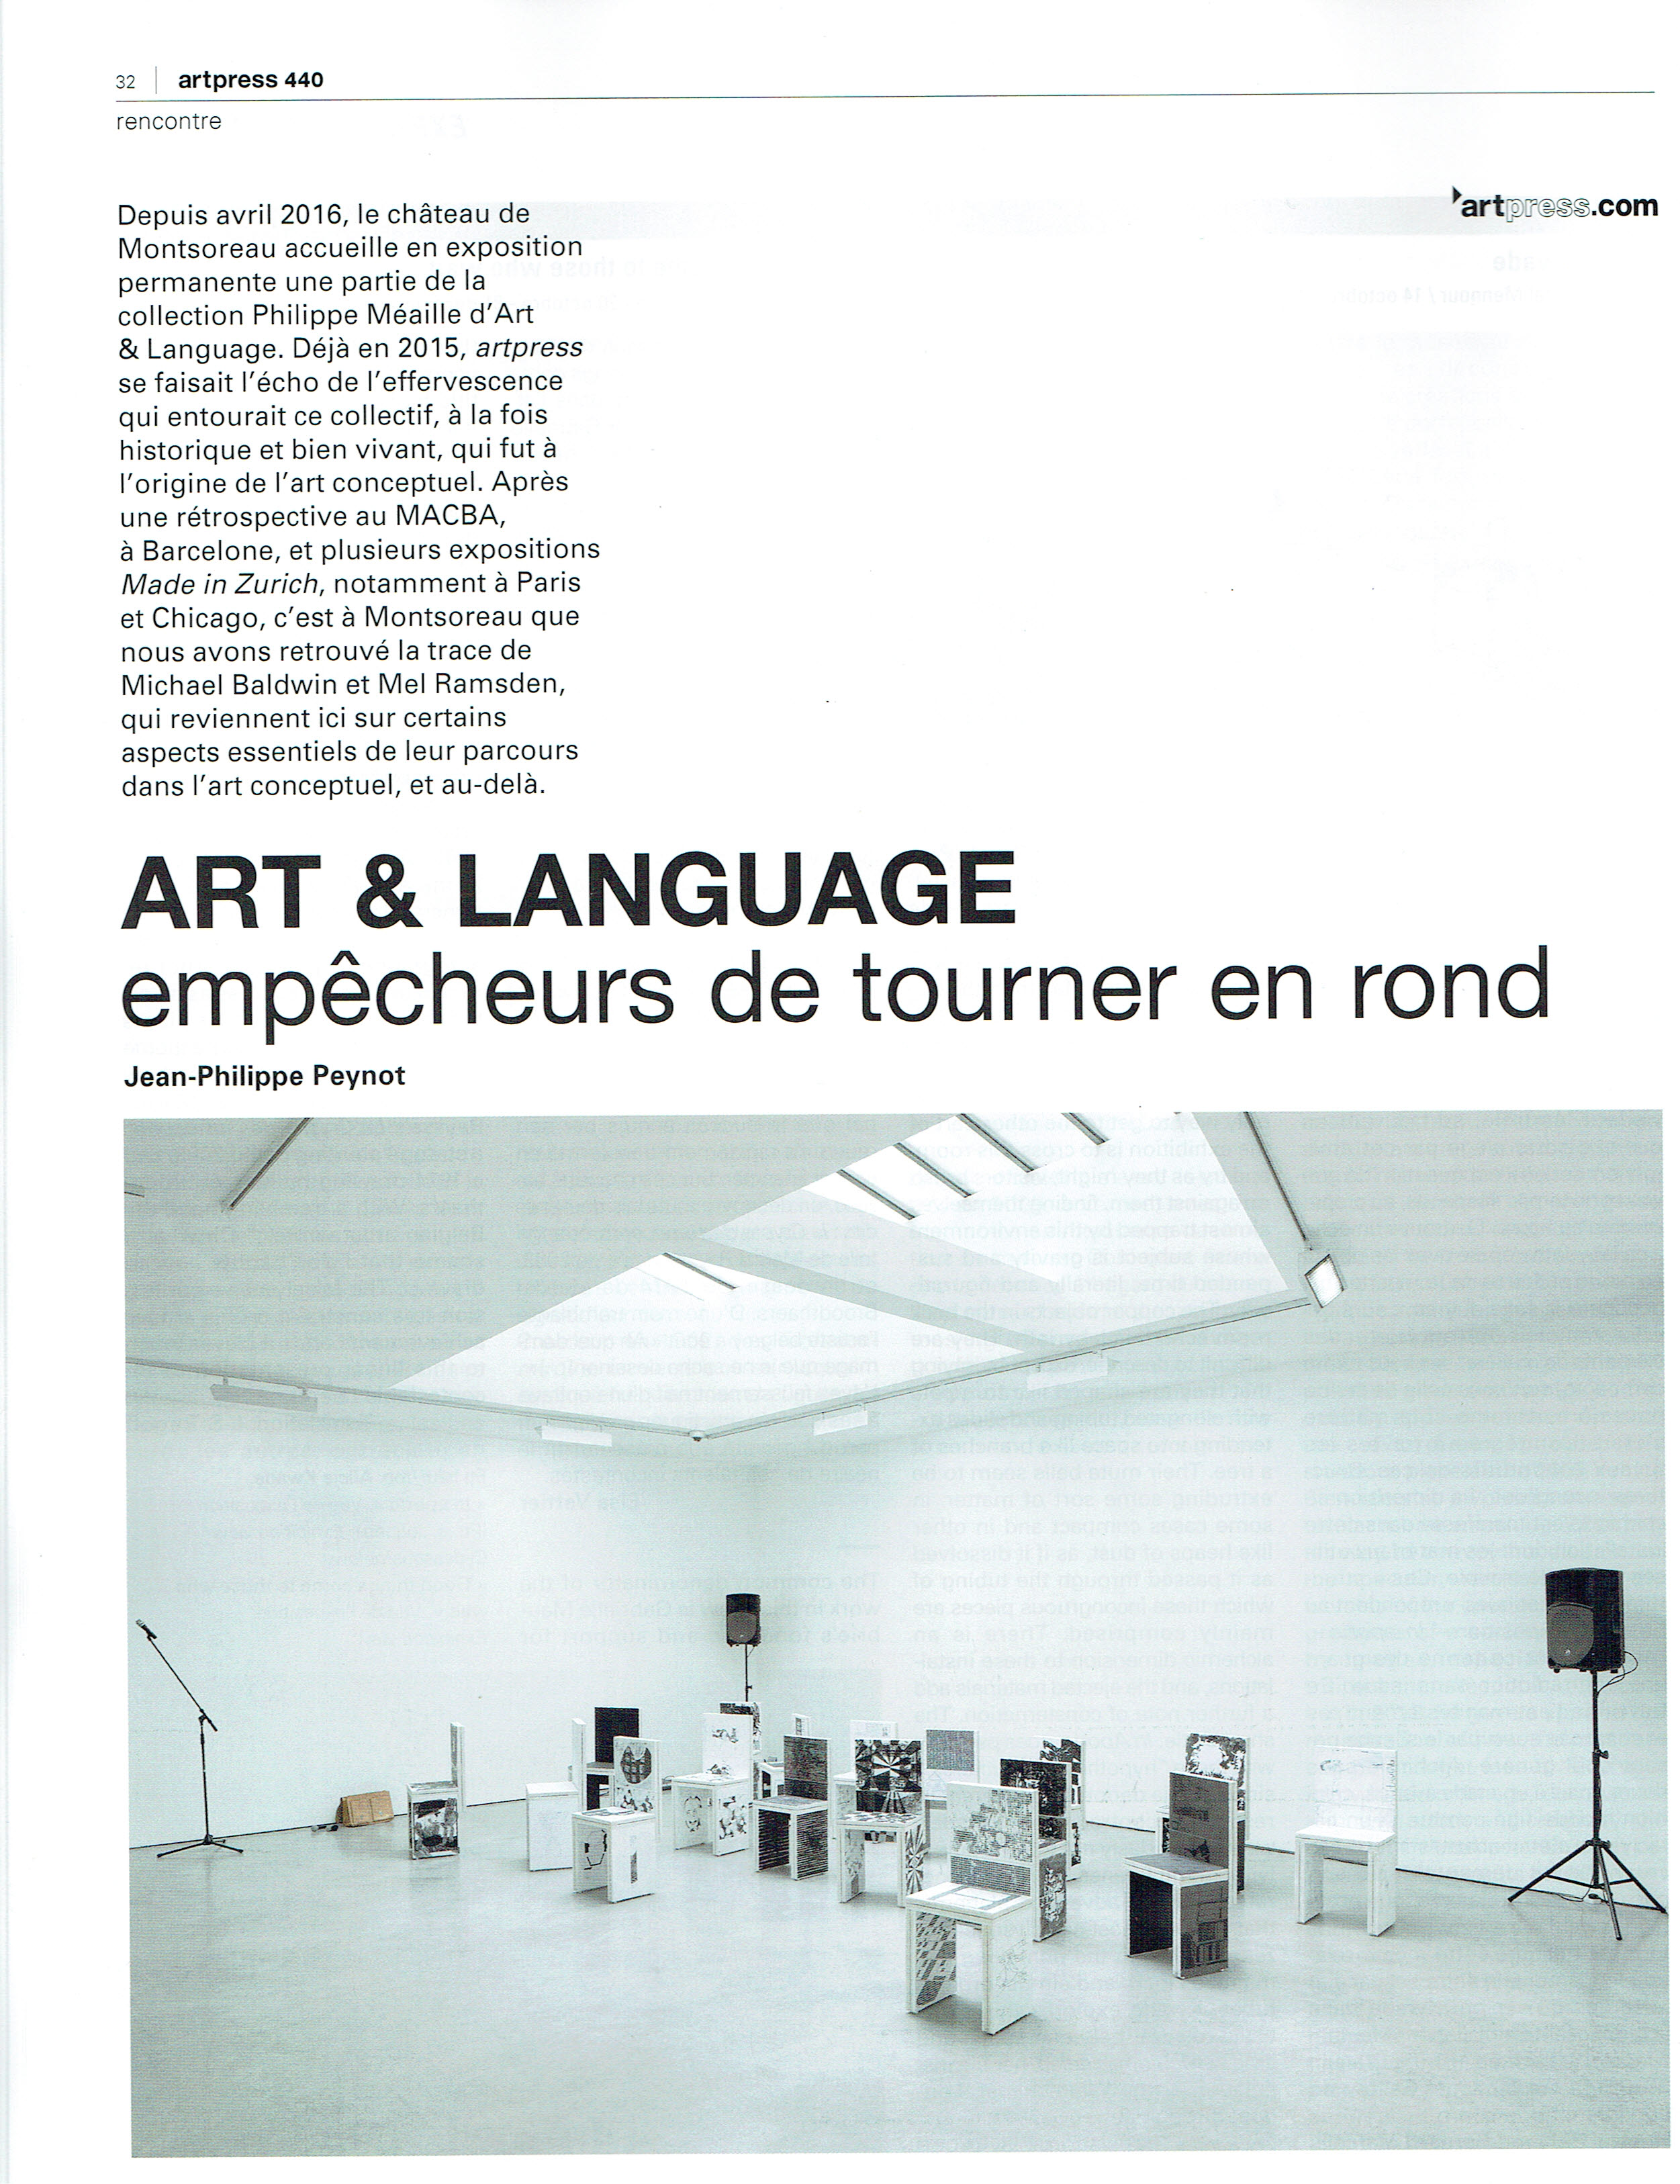 Article about Art & Language published by Art Press